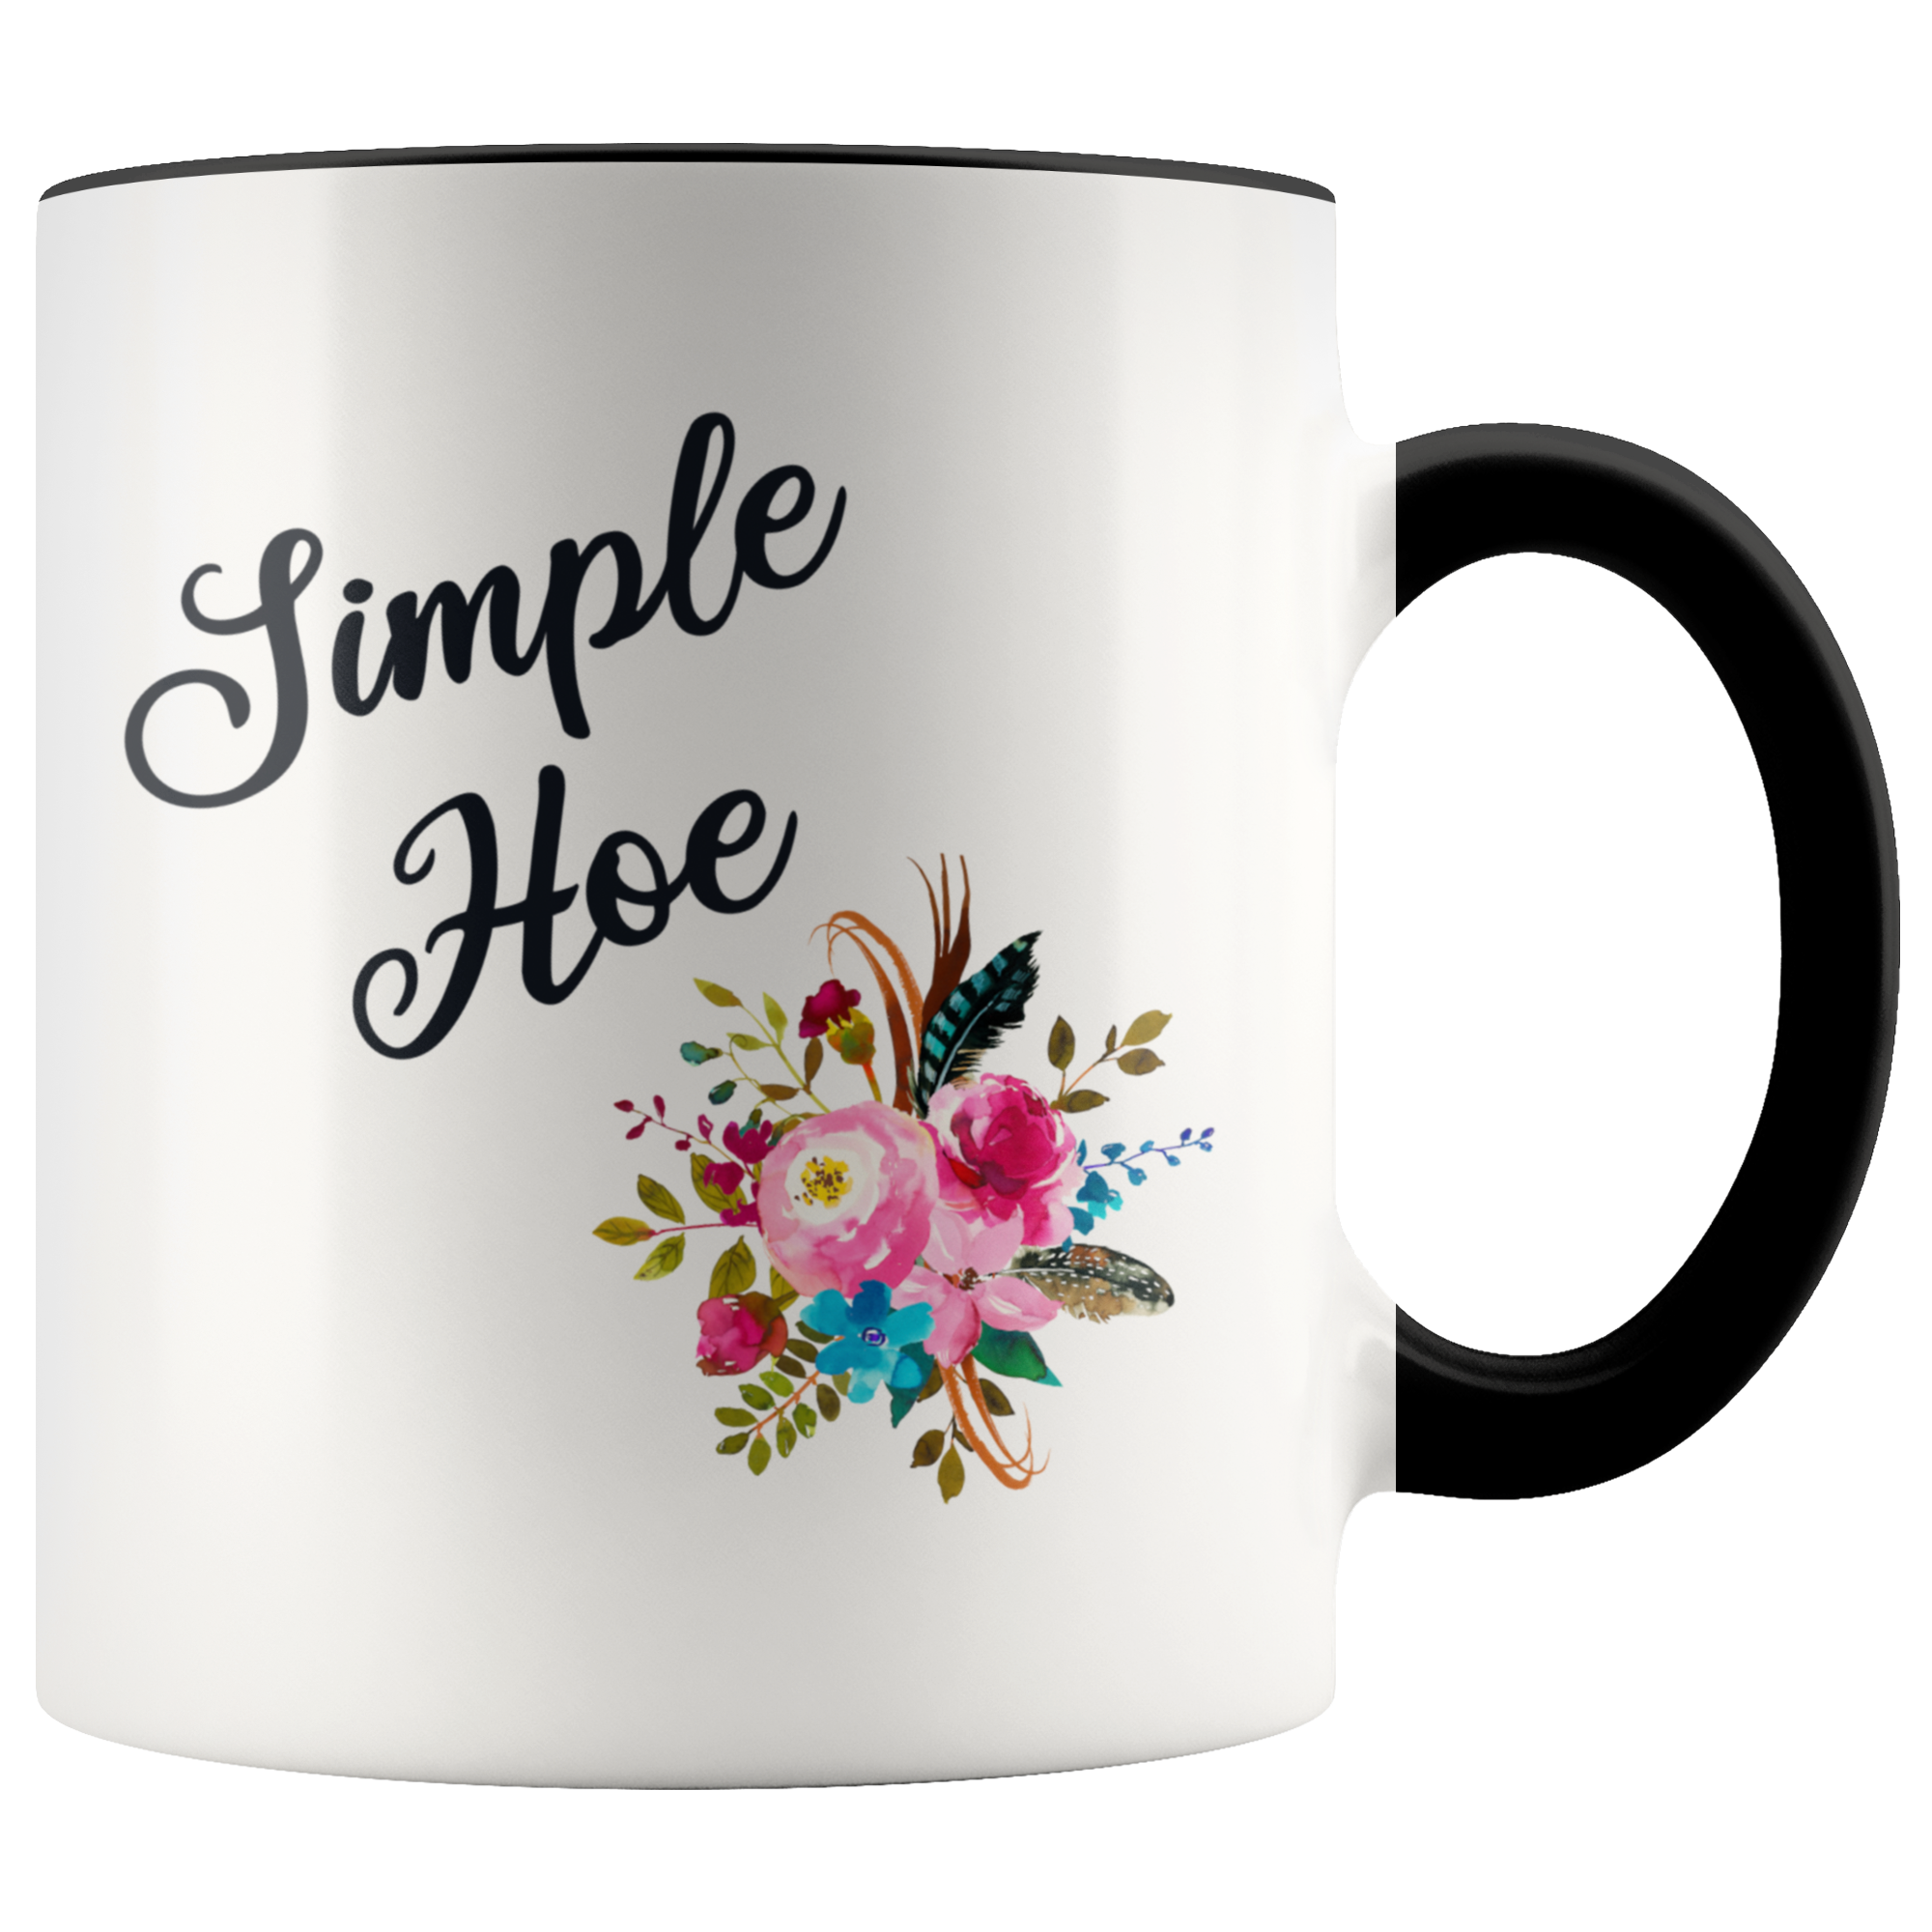 Simple Hoe Mug Funny Floral Coffee Cup Rude Gag Gift Idea Crass Insulting Best Friend Birthday Gifts